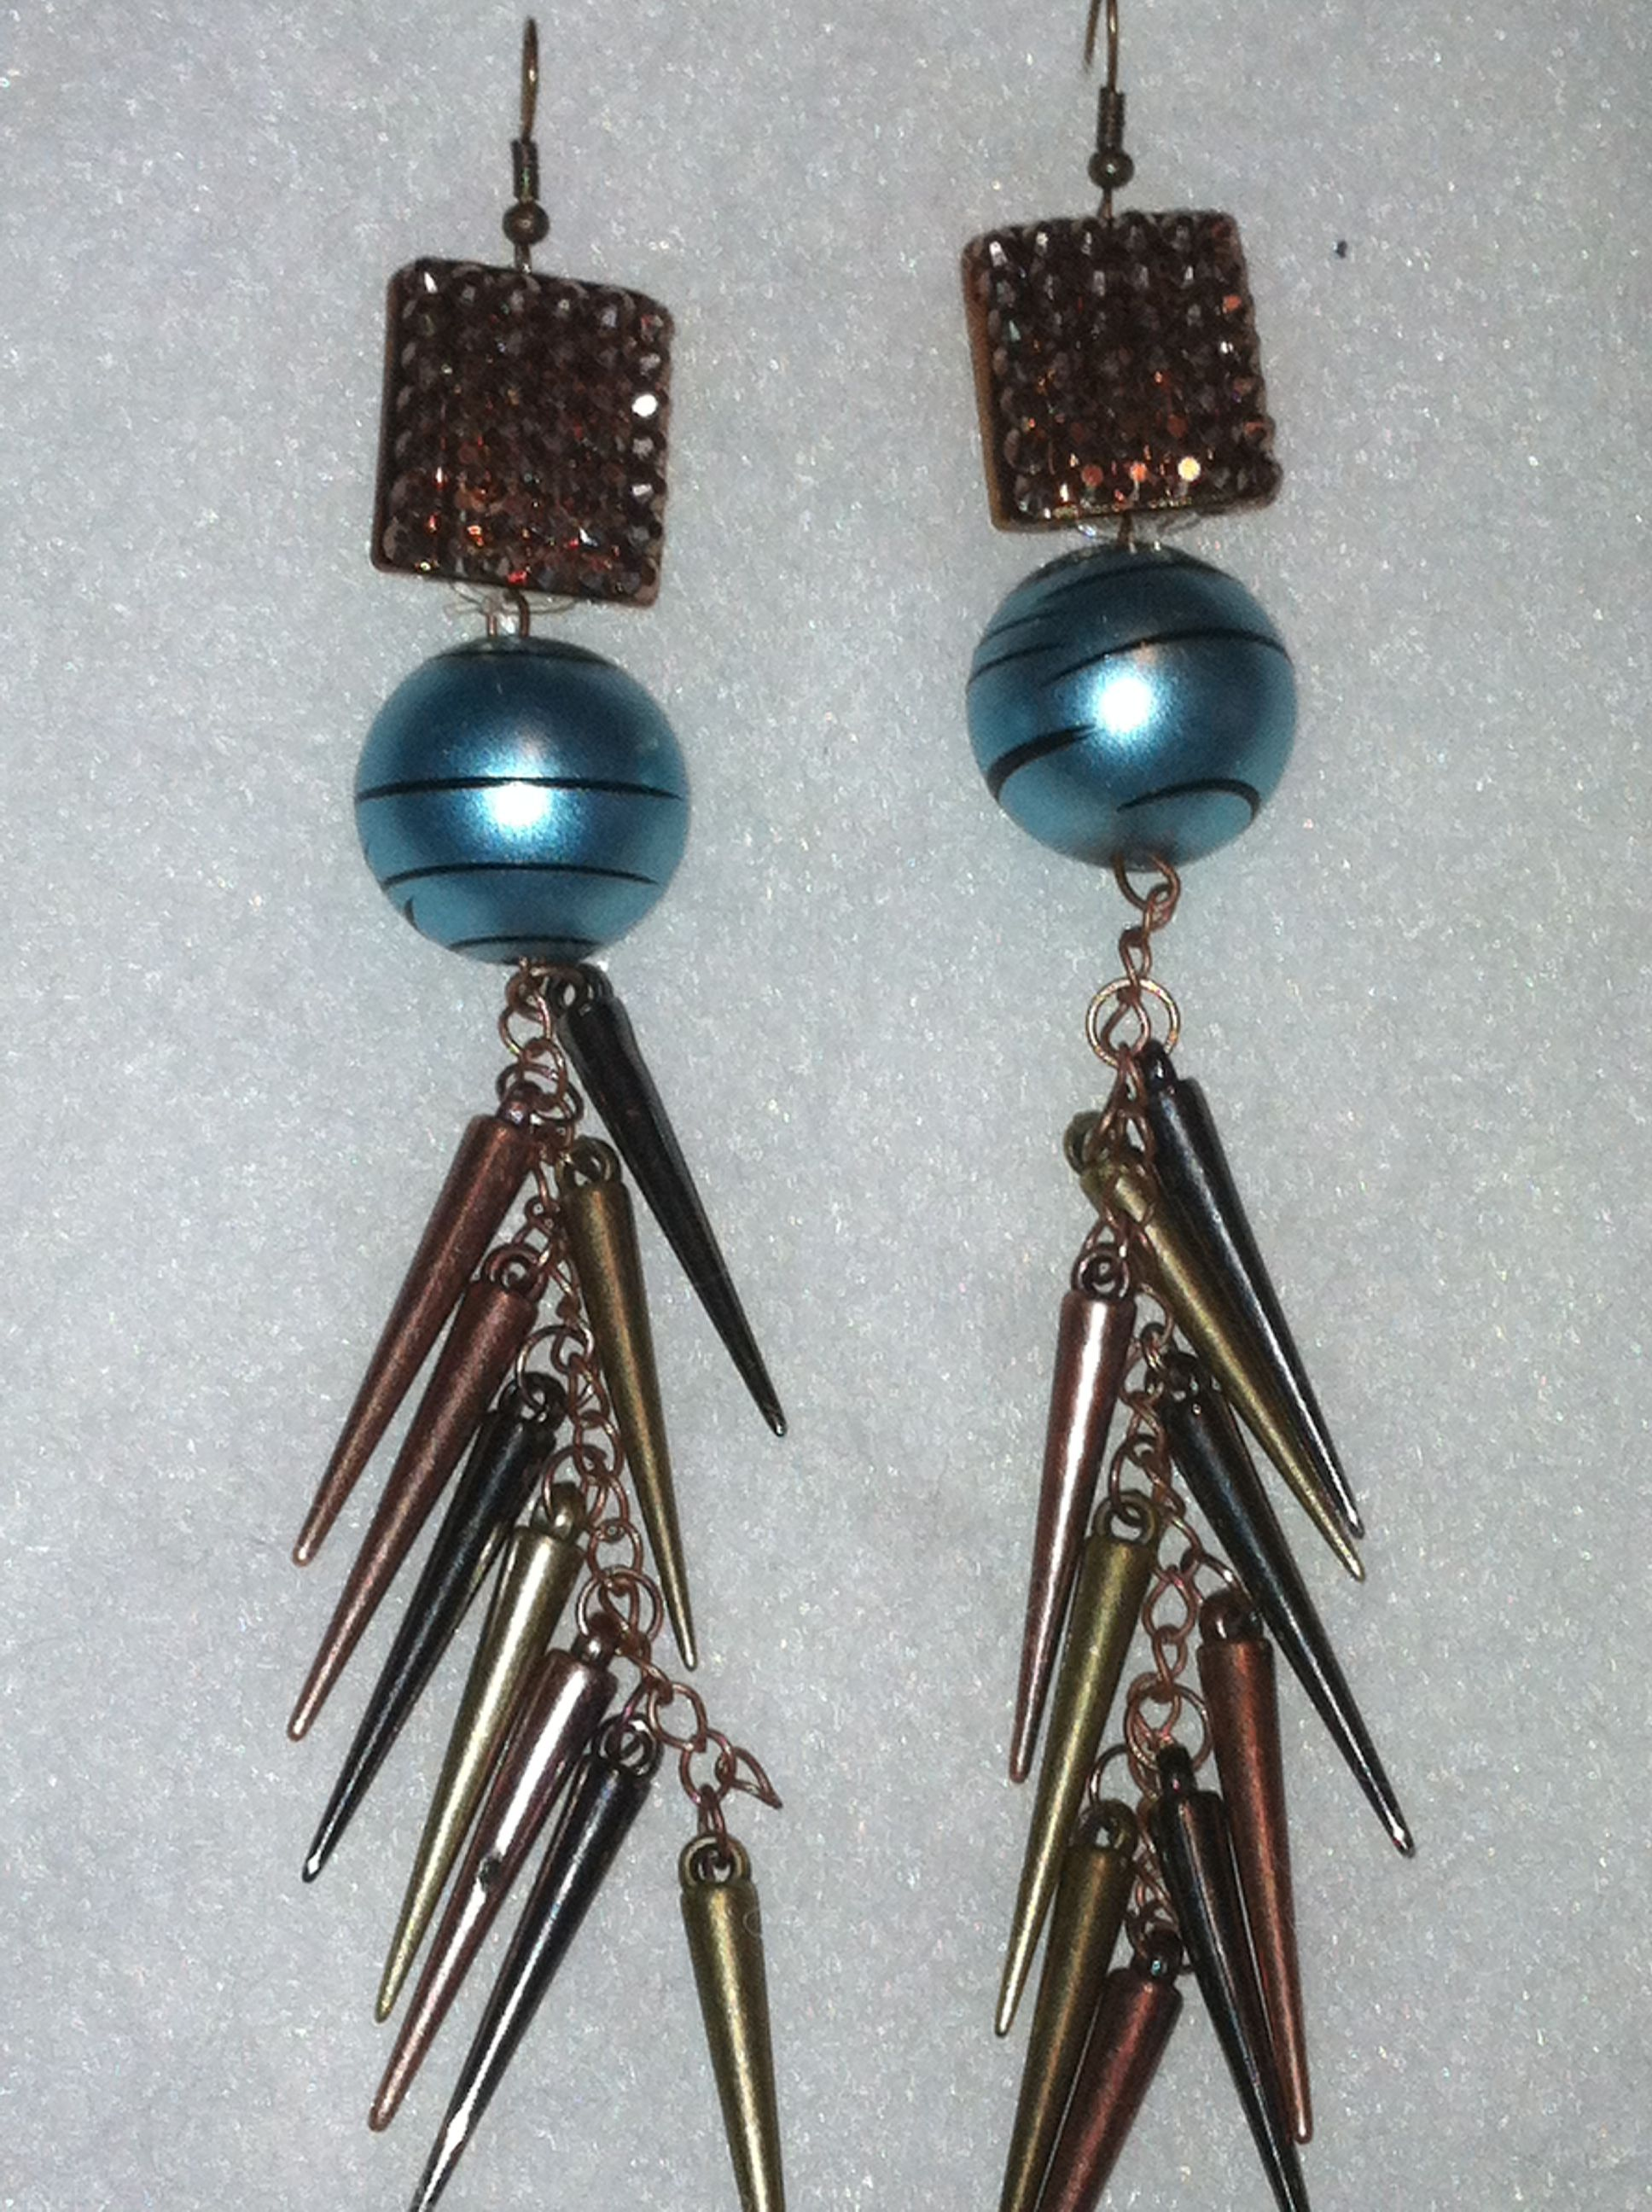 http://TurquoiseNirvana.bigcartel.com #Jewelry #Handmade #HandmadeJewelry #UniqueJewelry #Earrings #HandmadeEarrings #UniqueEarrings #Accessories #Fashion # #Art #Boho #Bohemian #Hippie #HoopEarrings #BeadedEarrings #BeadedJewelry #Pearls #WoodenBeads #GlassBeads #TurquoiseNirvana